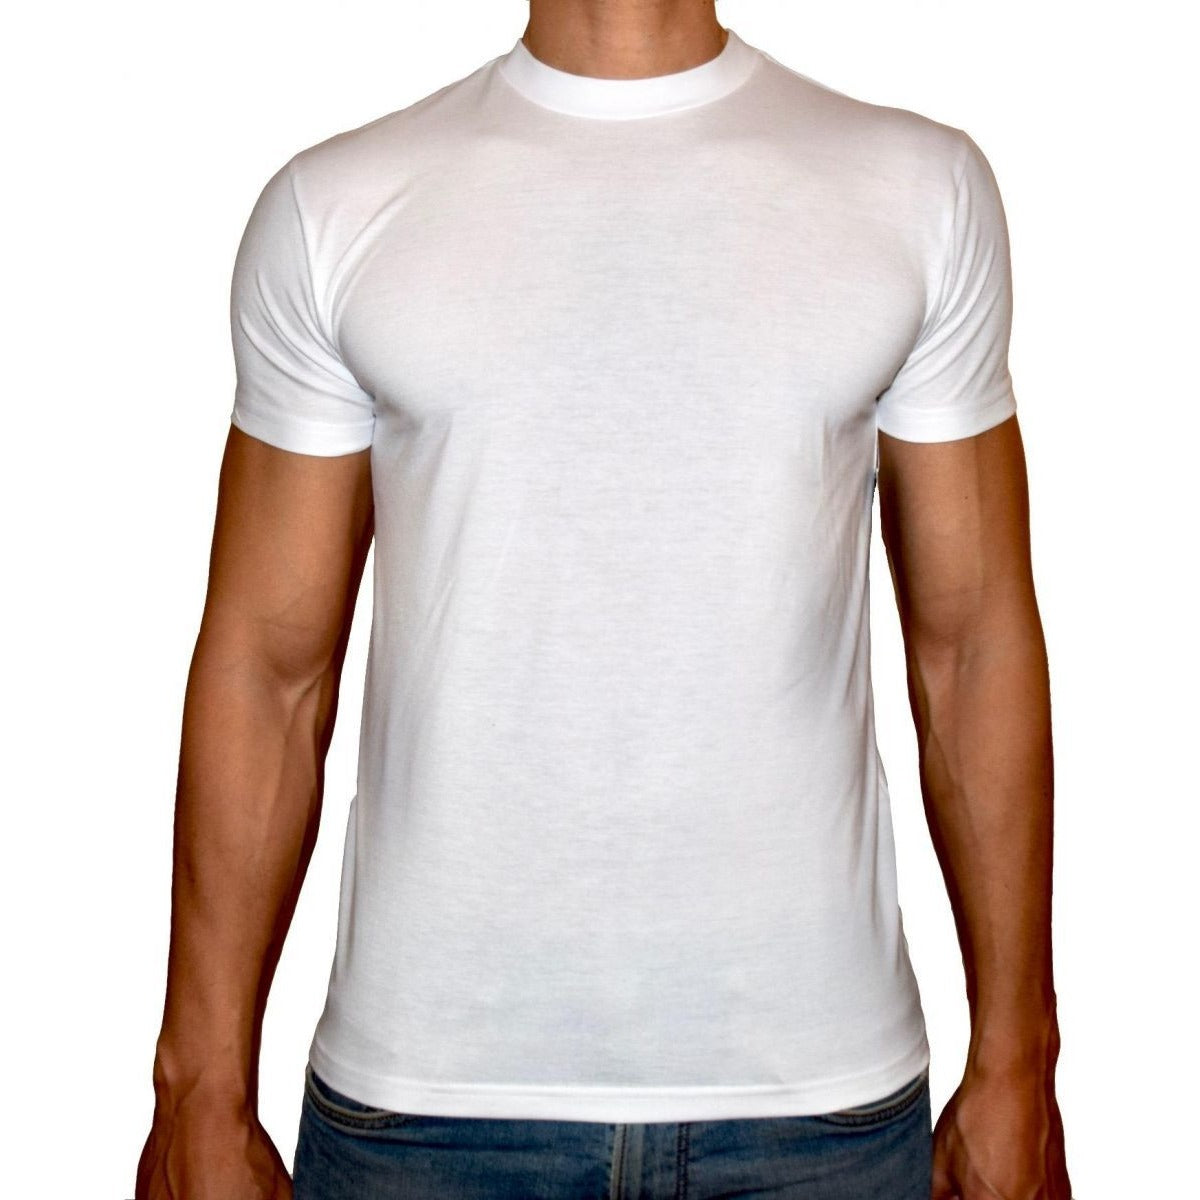 PHOENIX Basic White Round Neck T-Shirt For Men